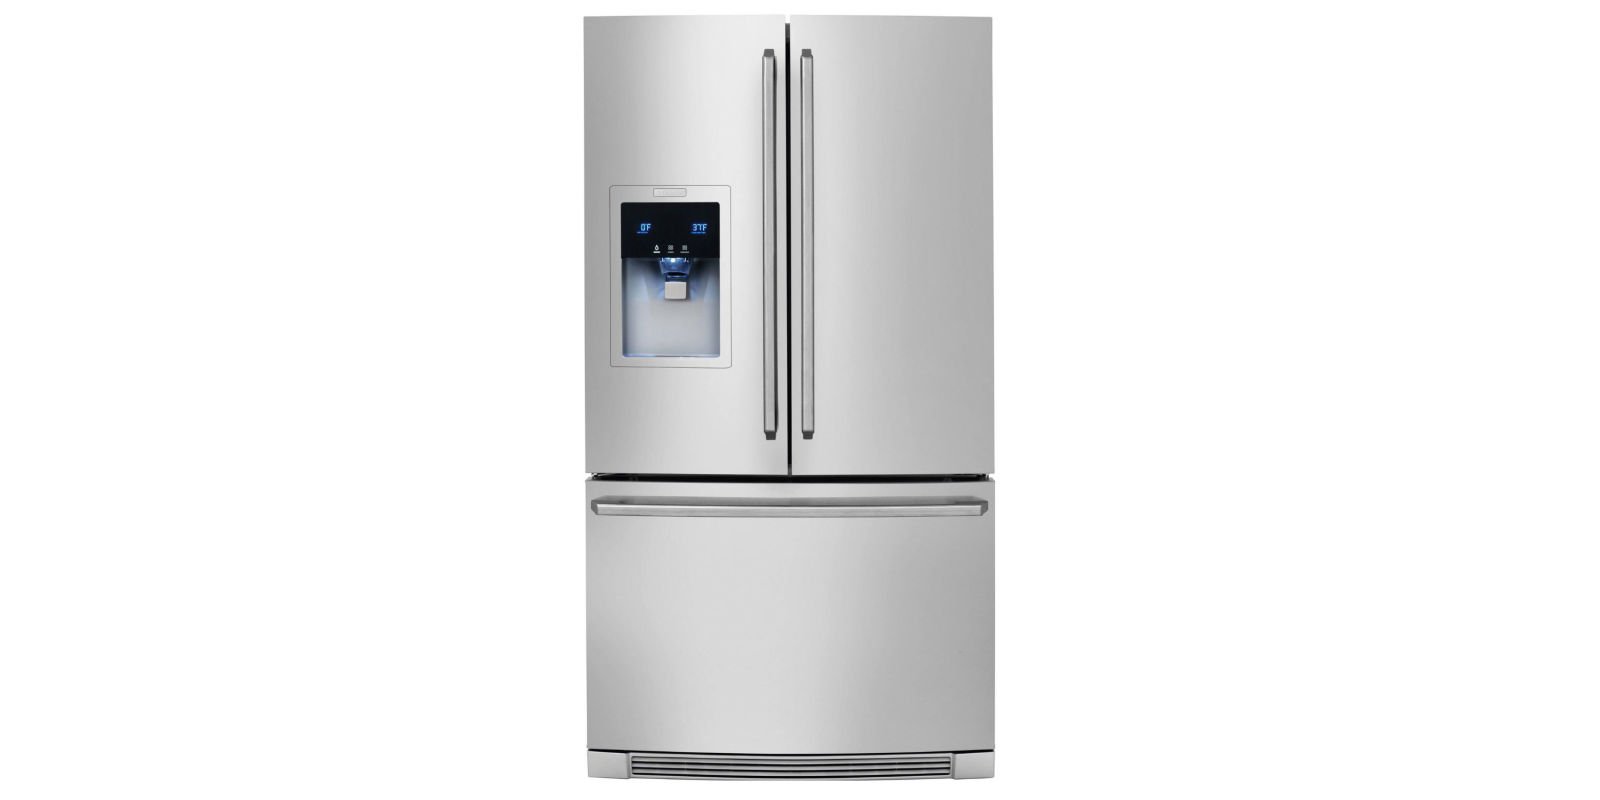 kenmore refrigerator elite. electrolux counter-depth french door refrigerator kenmore elite